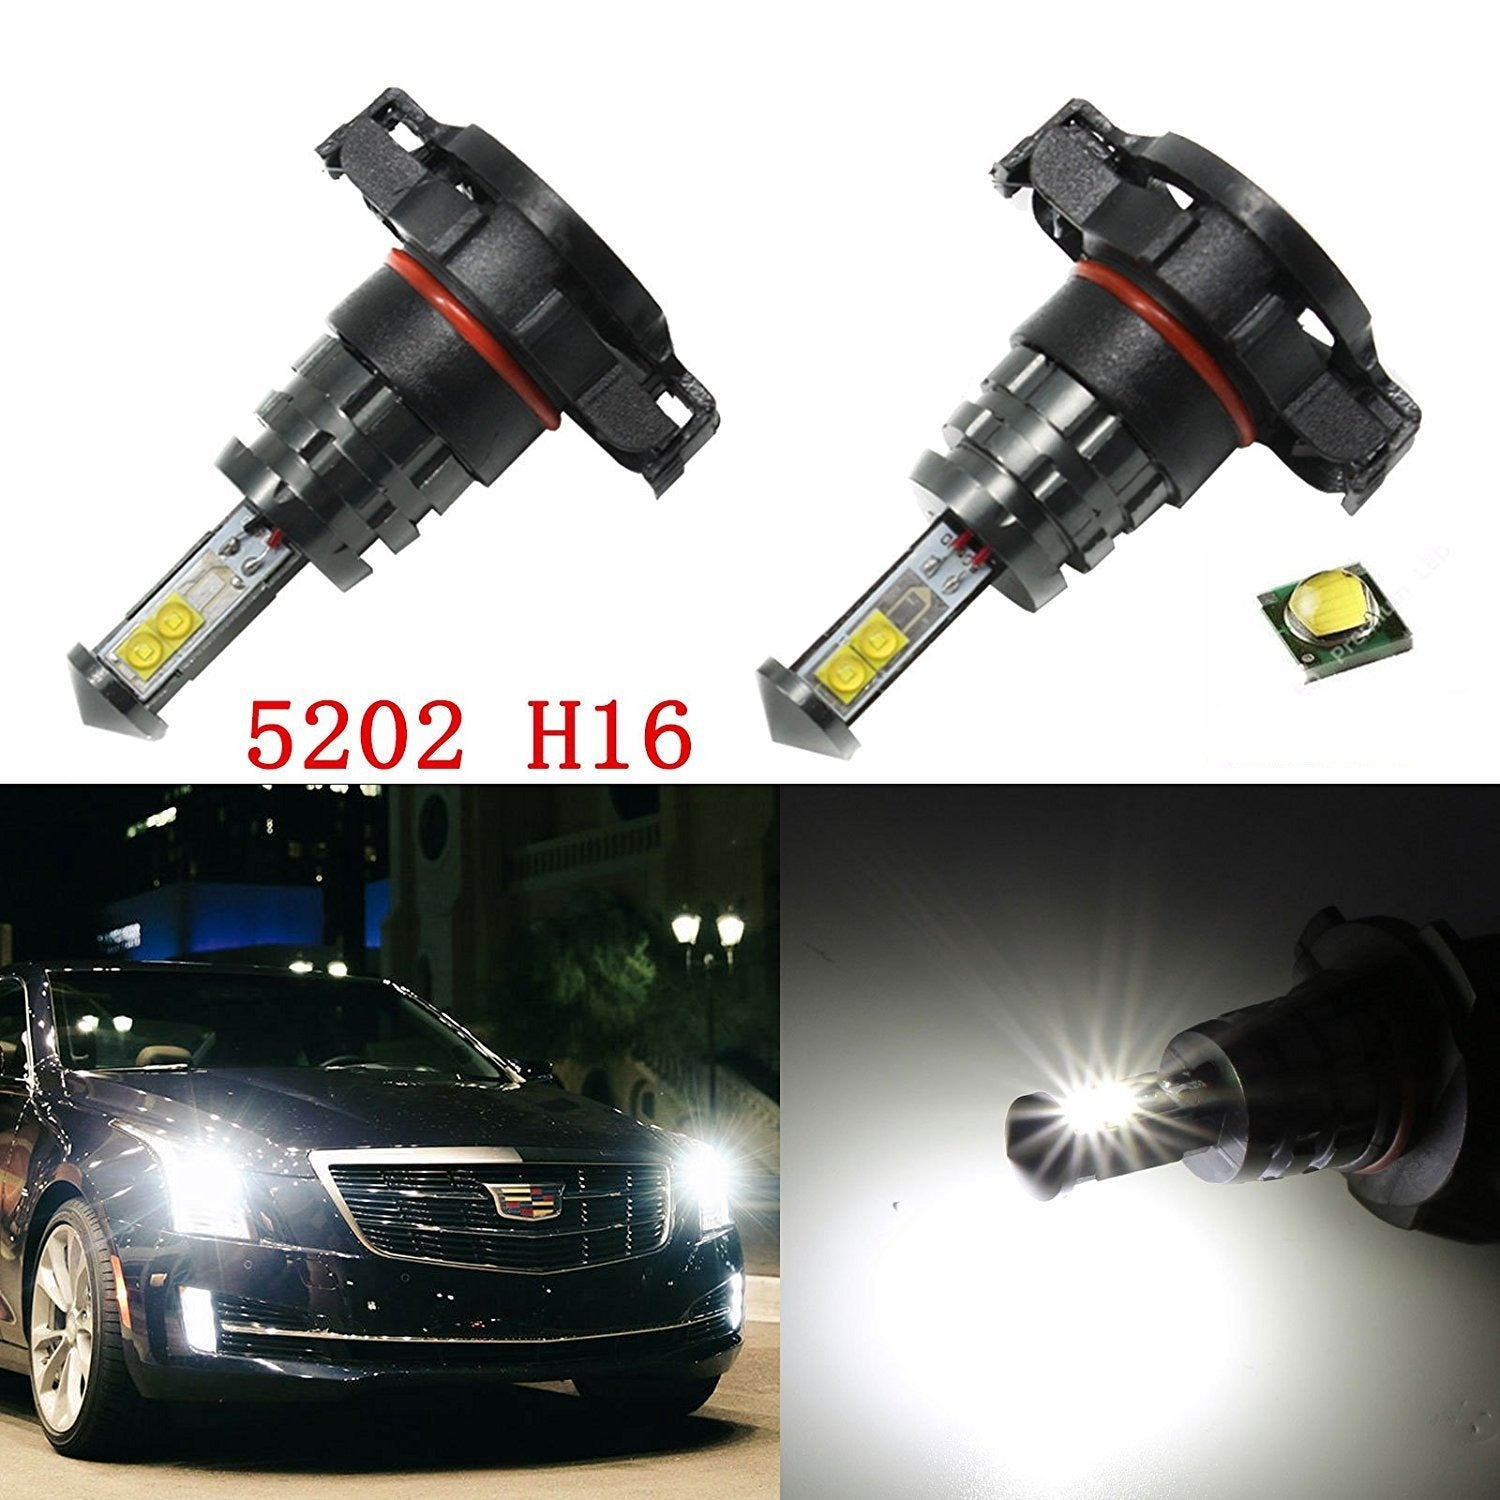 H16 2504 Ps24w Adapter For Fog Lights Drl Relay Wiring Harness Ebay Led Light Mediatown 360 2 Super Bright White Cree 5202 Daytime Running Driving